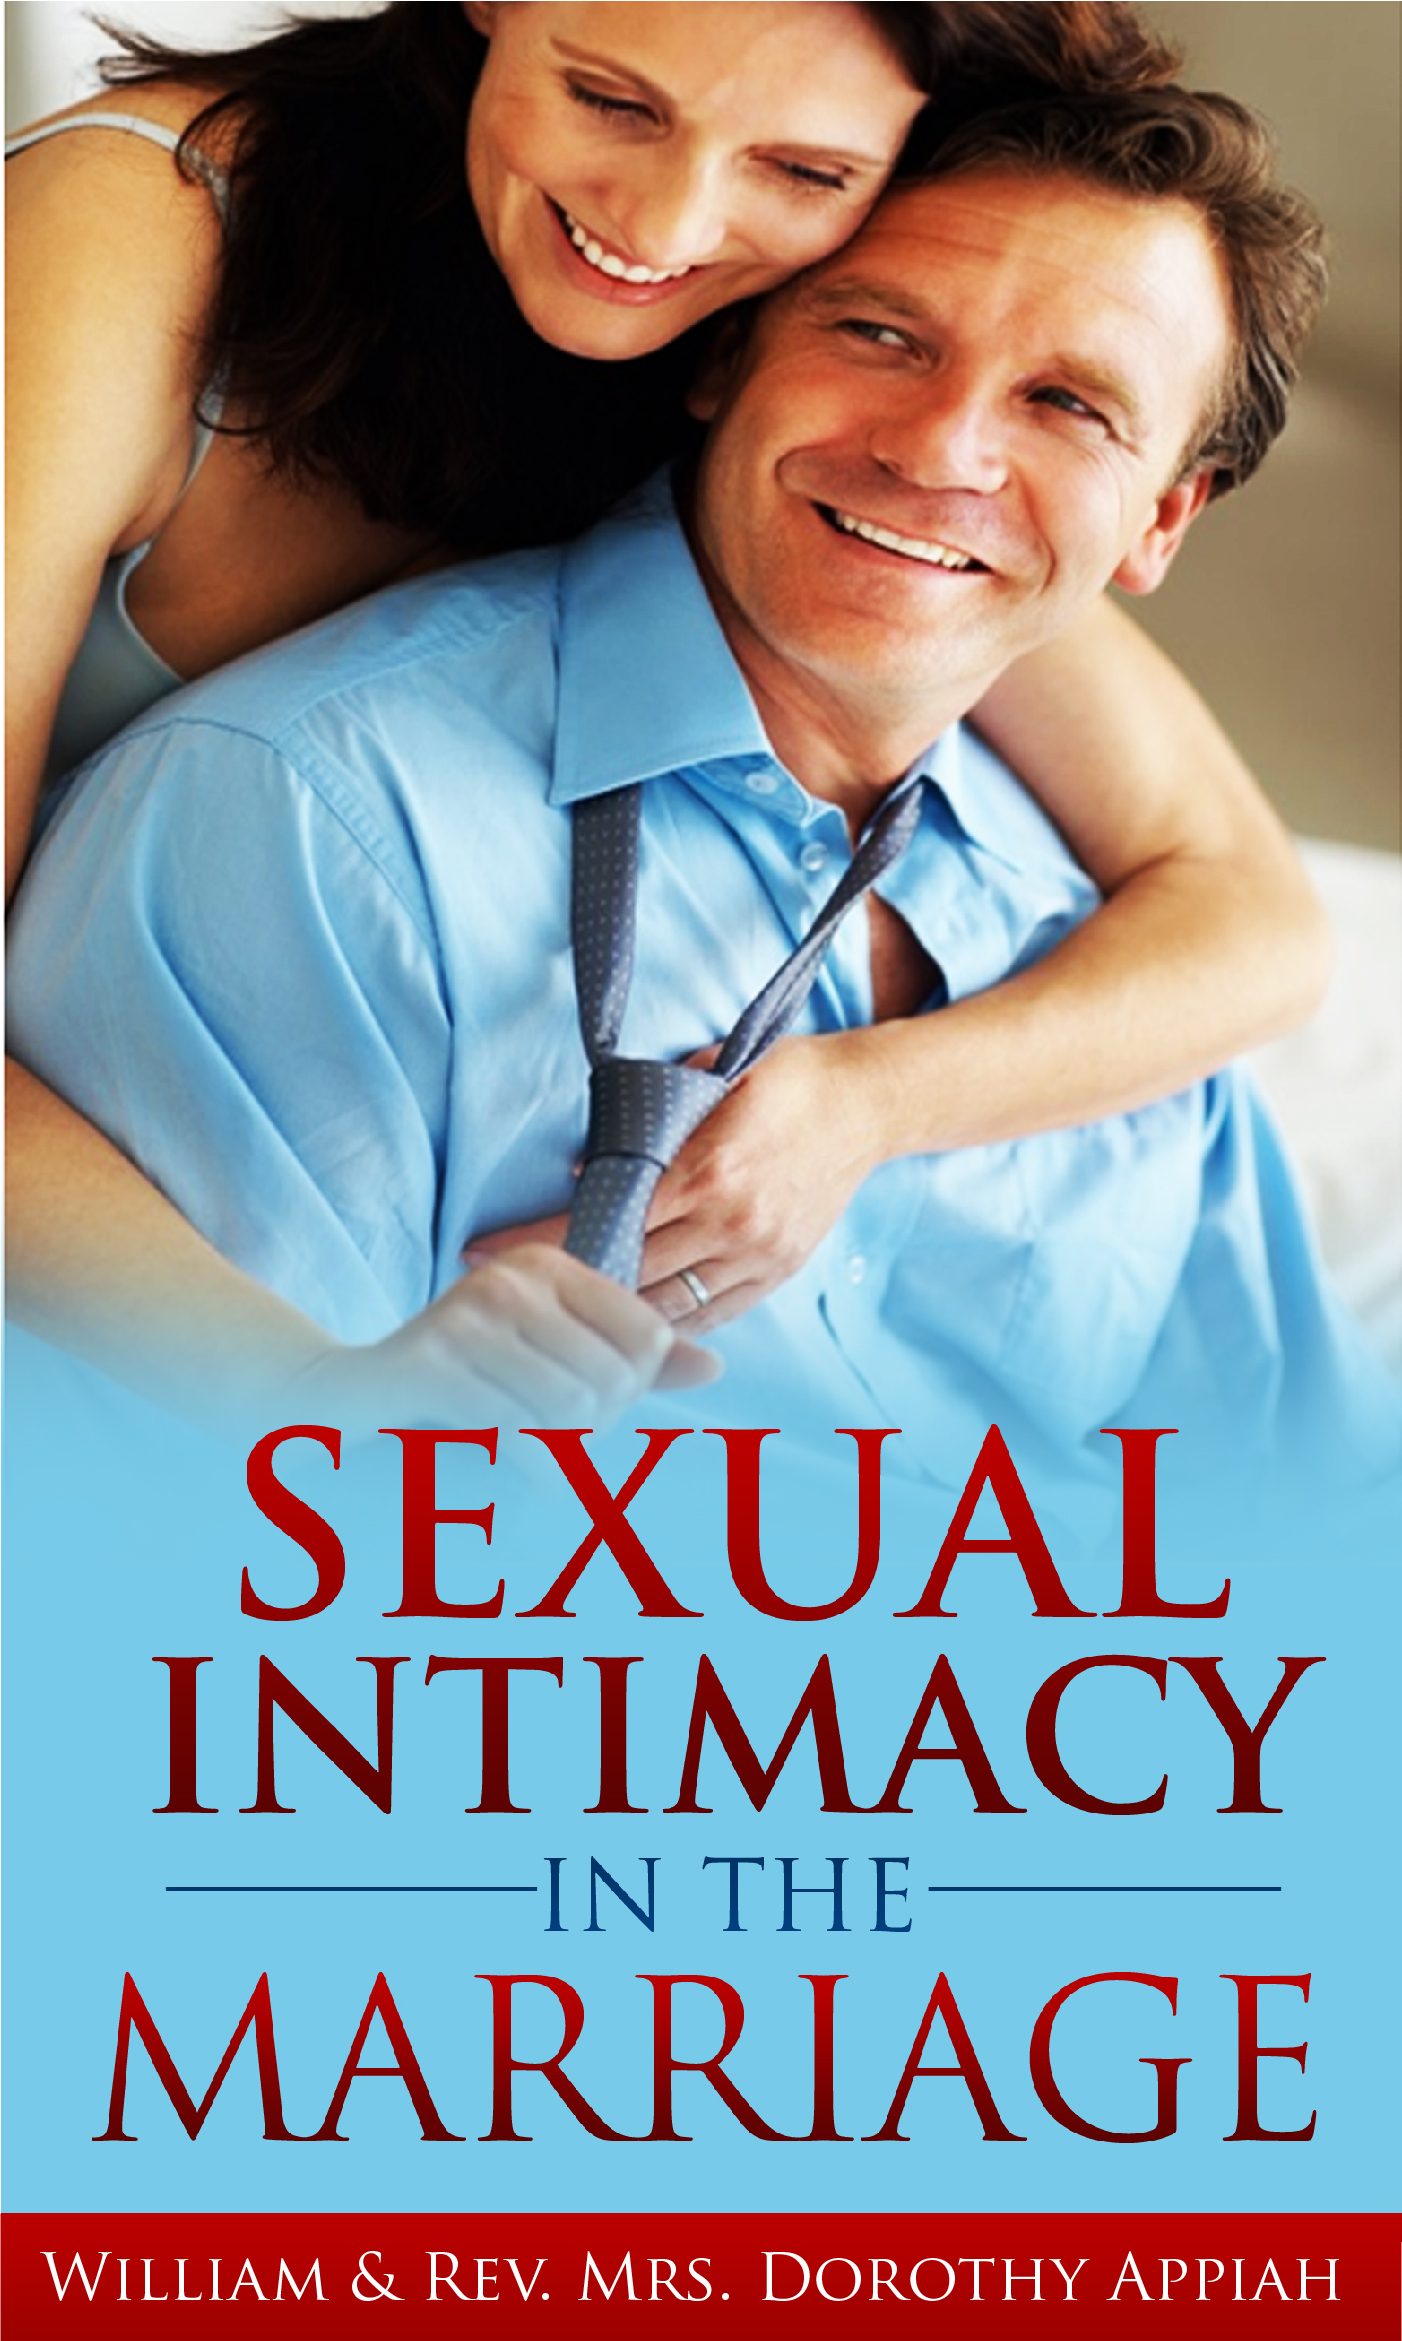 sexual intimacy Sex and intimacy can be difficult to discuss, but open communication will lead to greater intimacy and better sex.